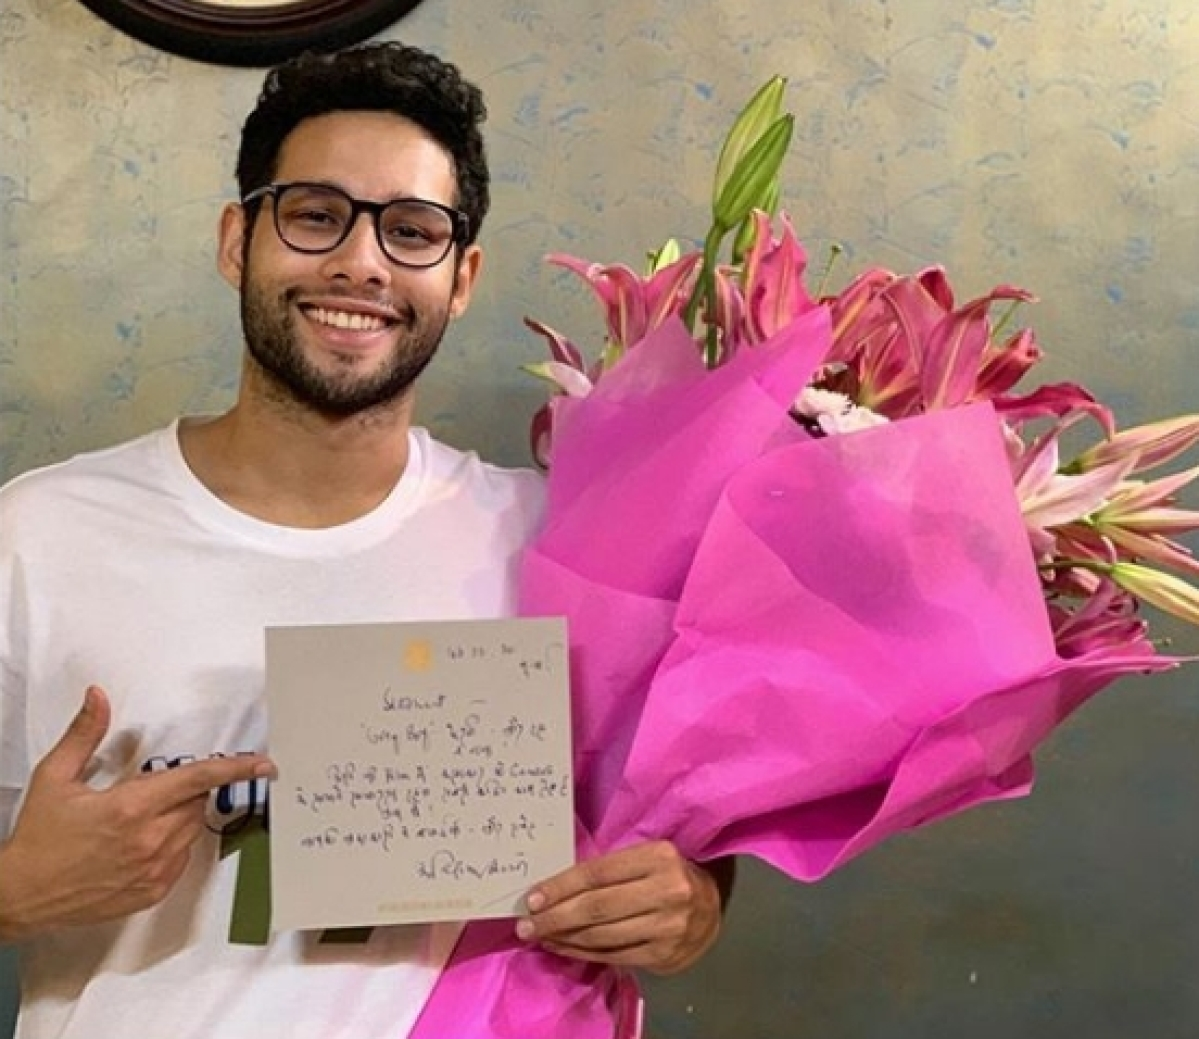 Gully Boy fame Siddhant Chaturvedi pens heartfelt note after receiving letter, flowers from Amitabh Bachchan